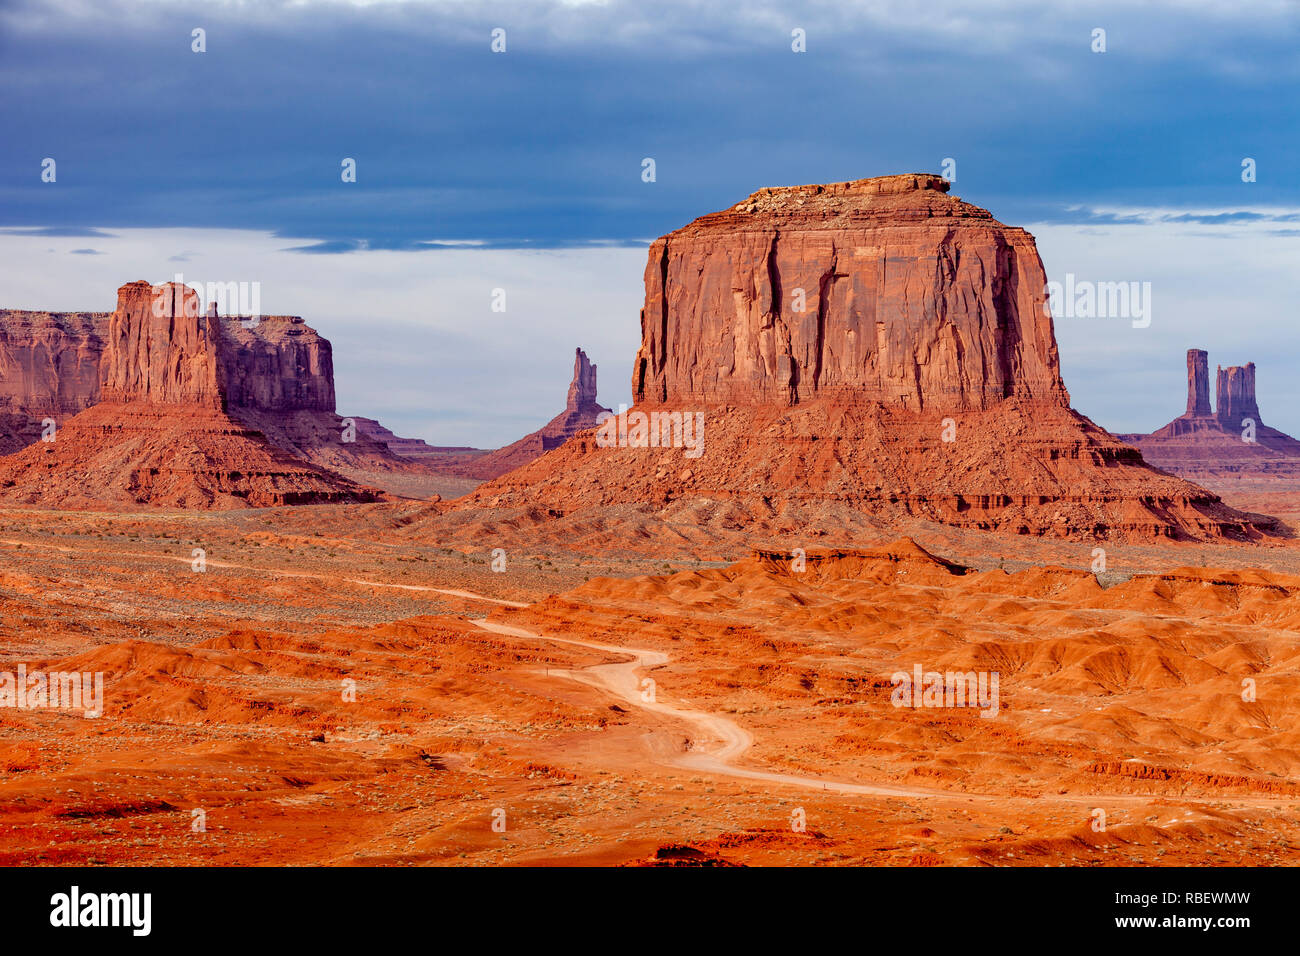 Merrick Butte and the rock formations of Monument Valley, Navajo Tribal Park, Arizona, USA - Stock Image